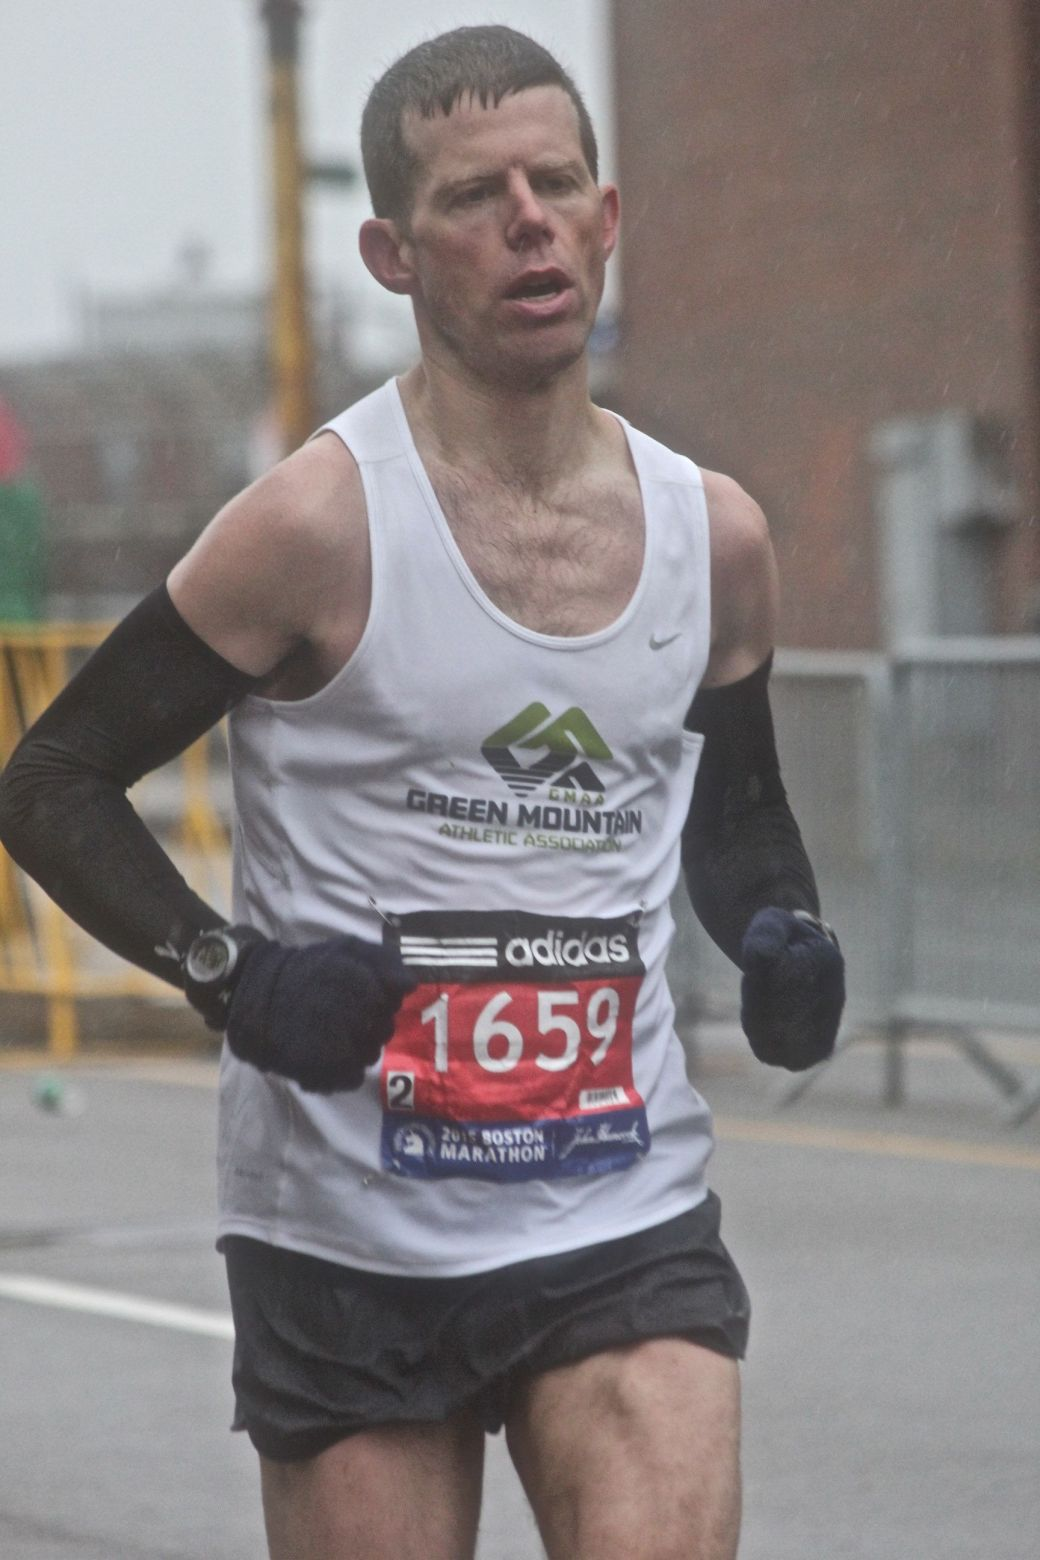 boston marathon april 20 2015 racer number 1659